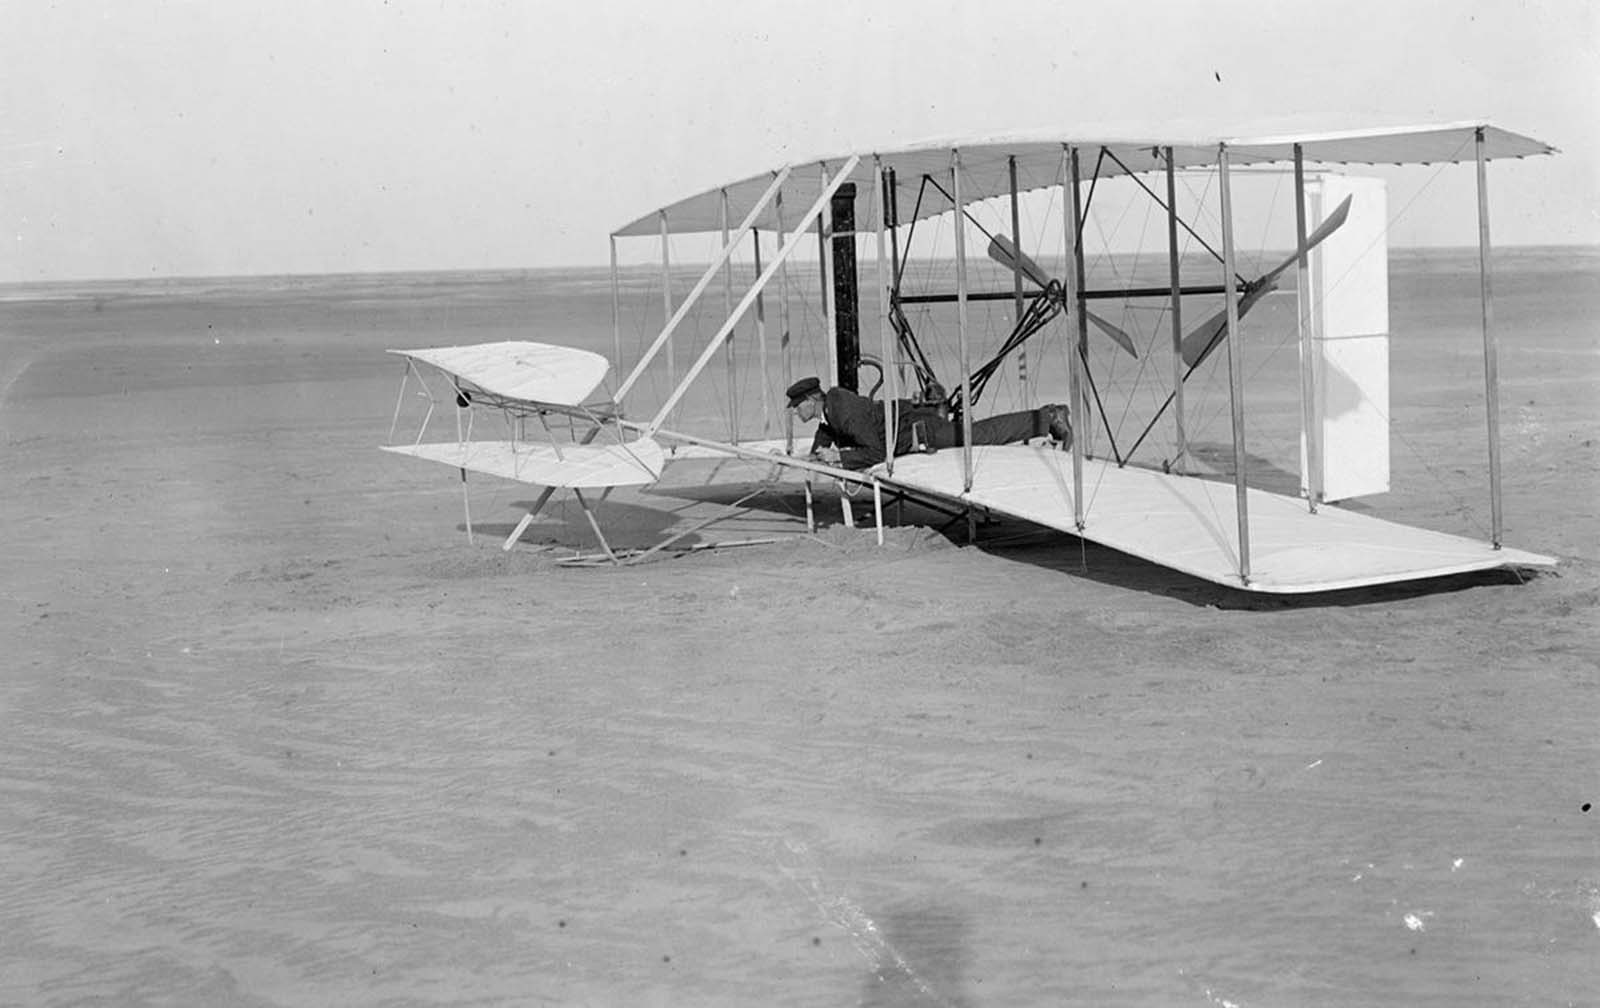 Wilbur Wright at the controls of the damaged Wright Flyer, on the ground after an unsuccessful trial on December 14, 1903, in Kitty Hawk, North Carolina.